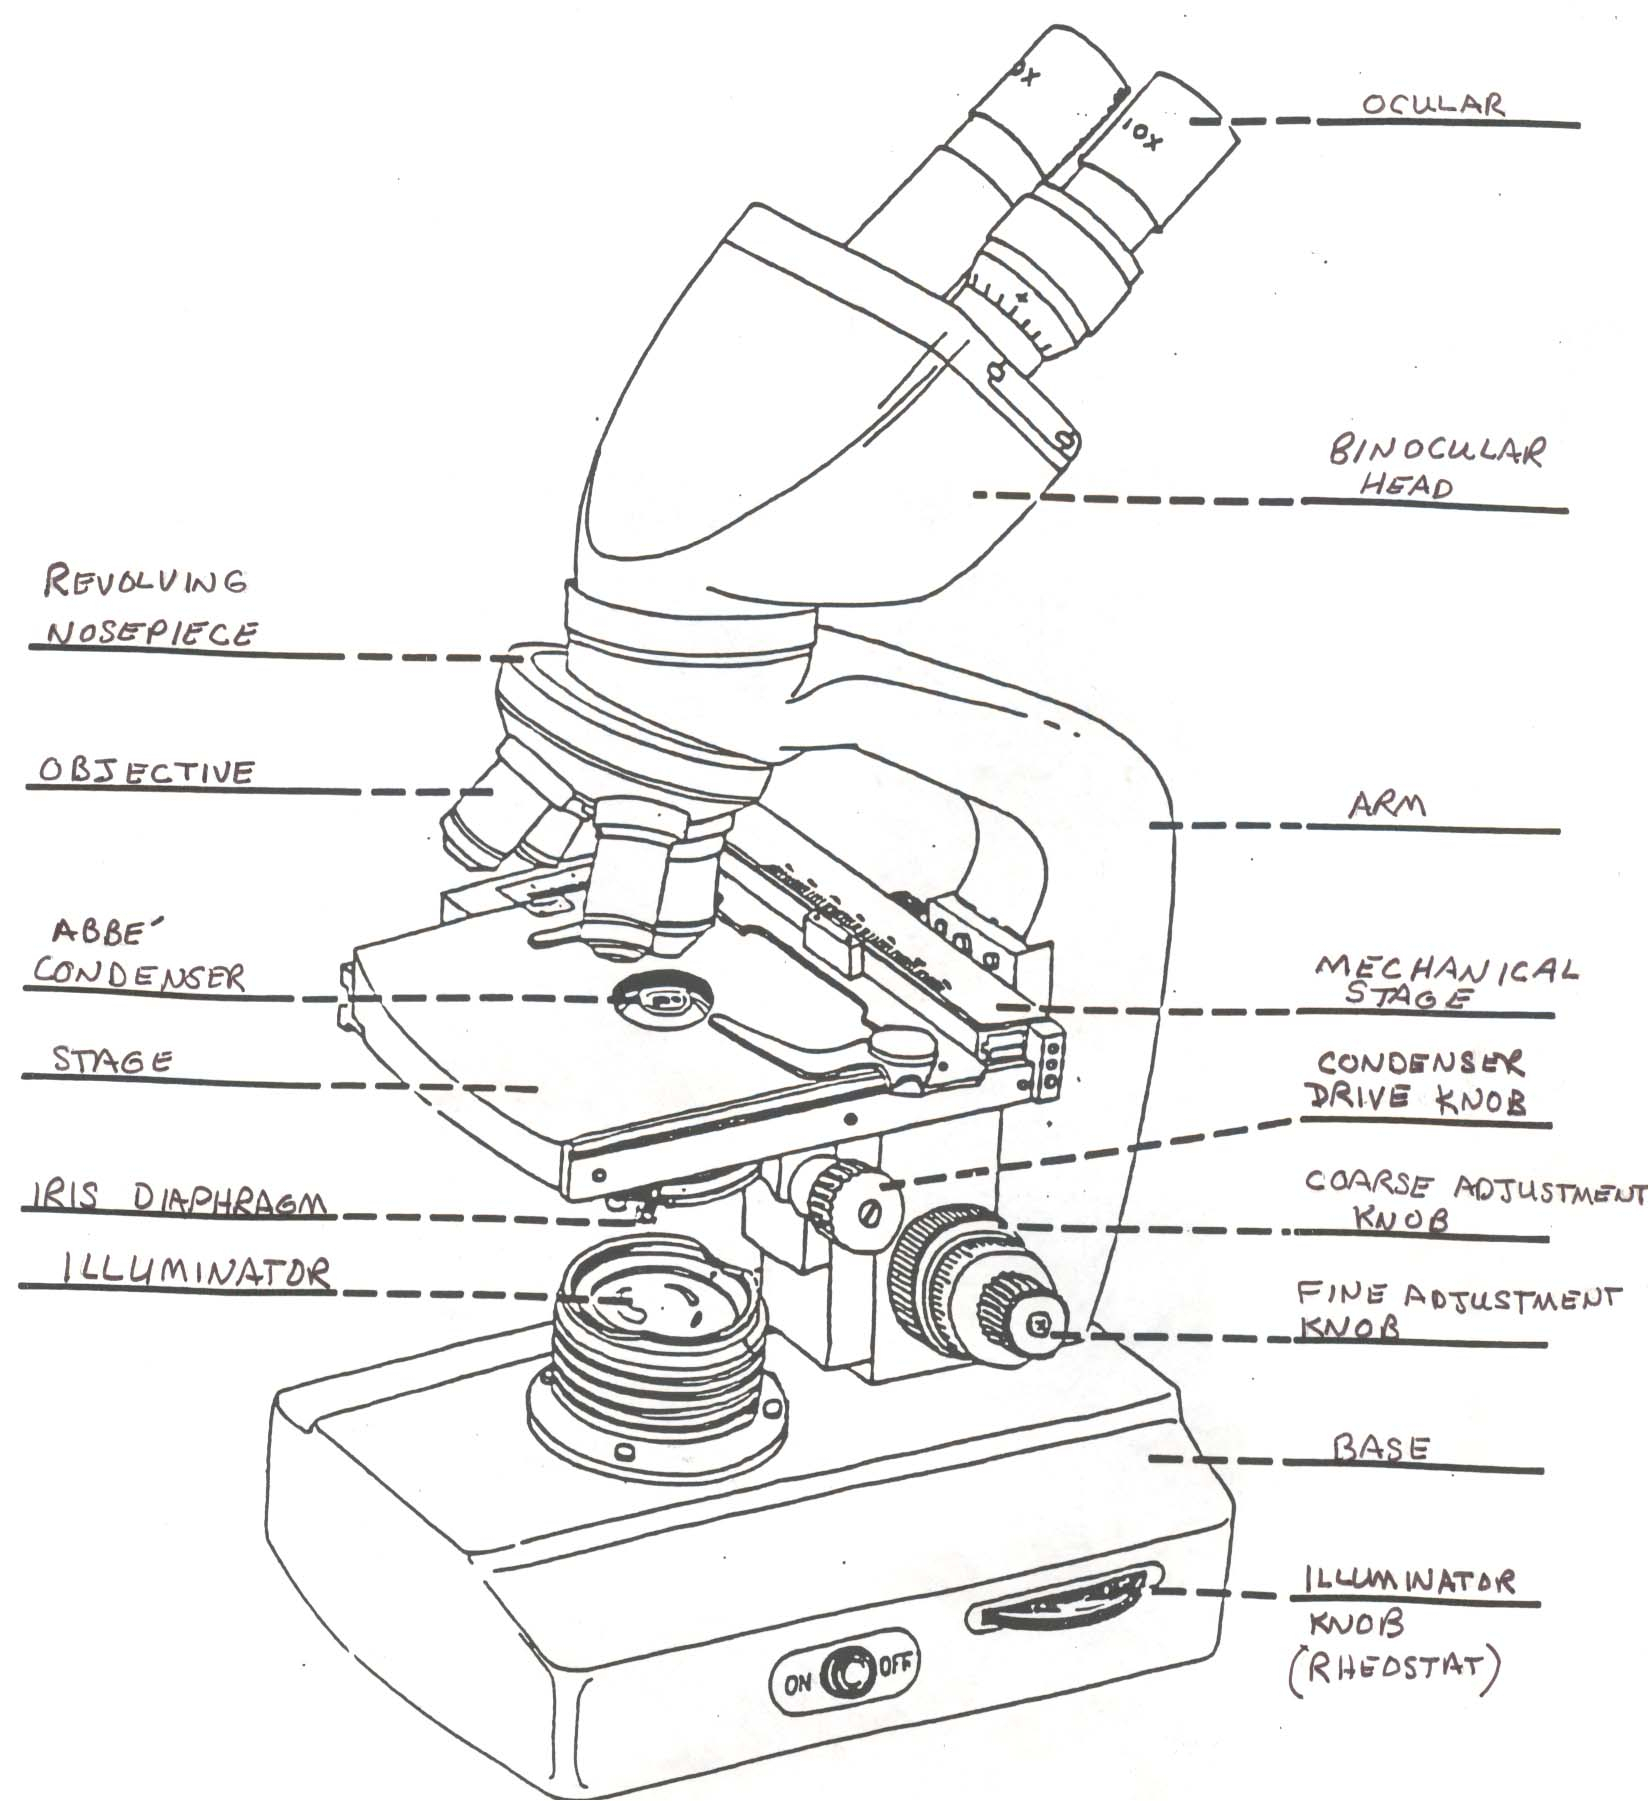 Compound Light Microscope Drawing At Getdrawings